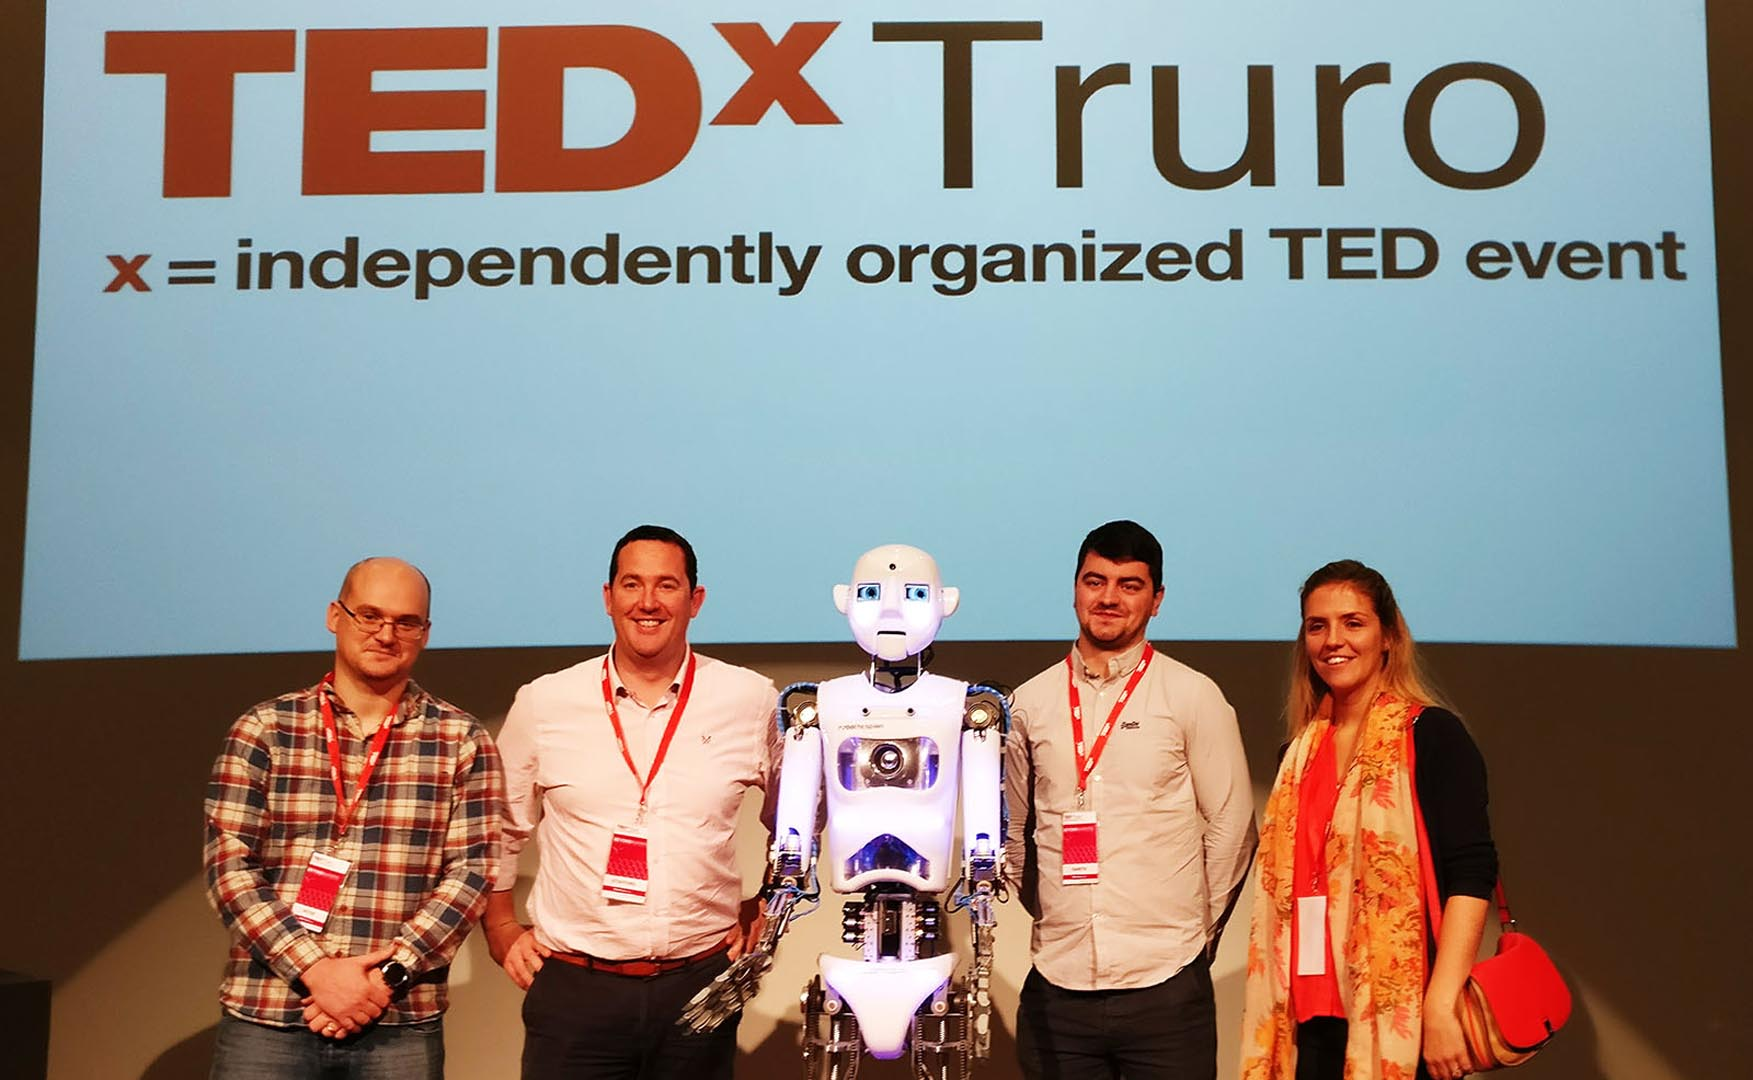 Moving Beyond Barriers at TEDx Truro